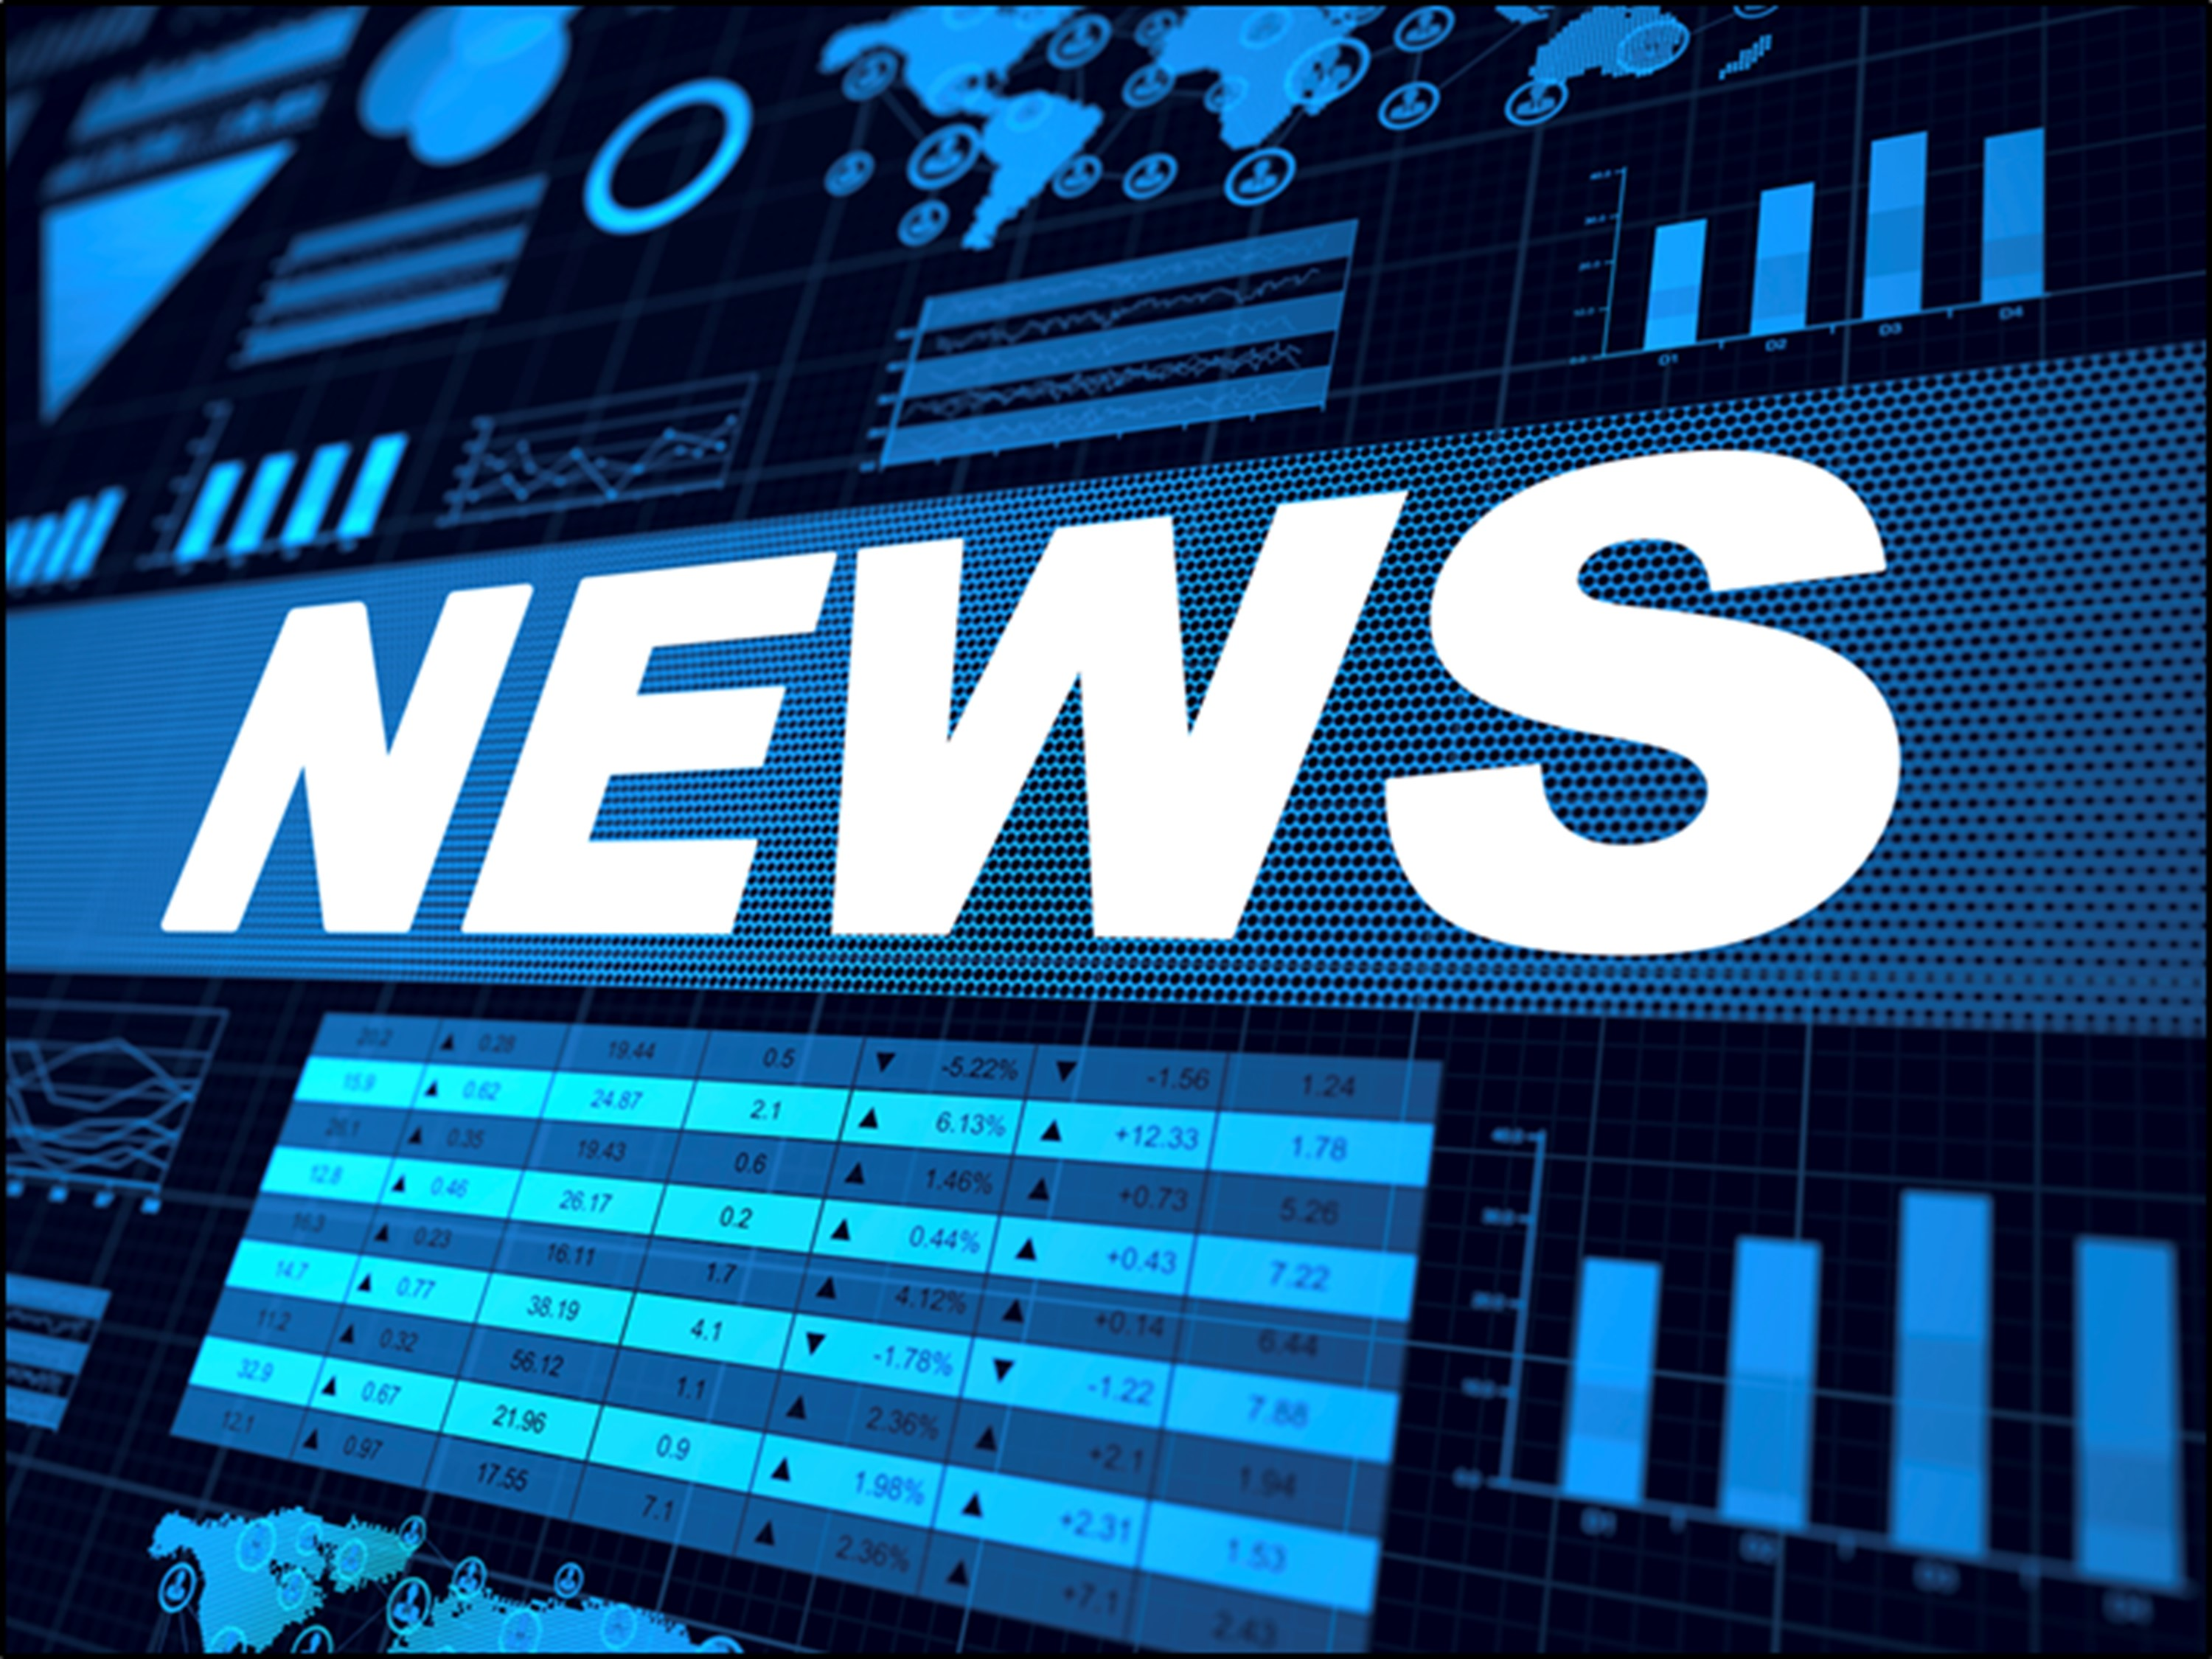 Credit industry news